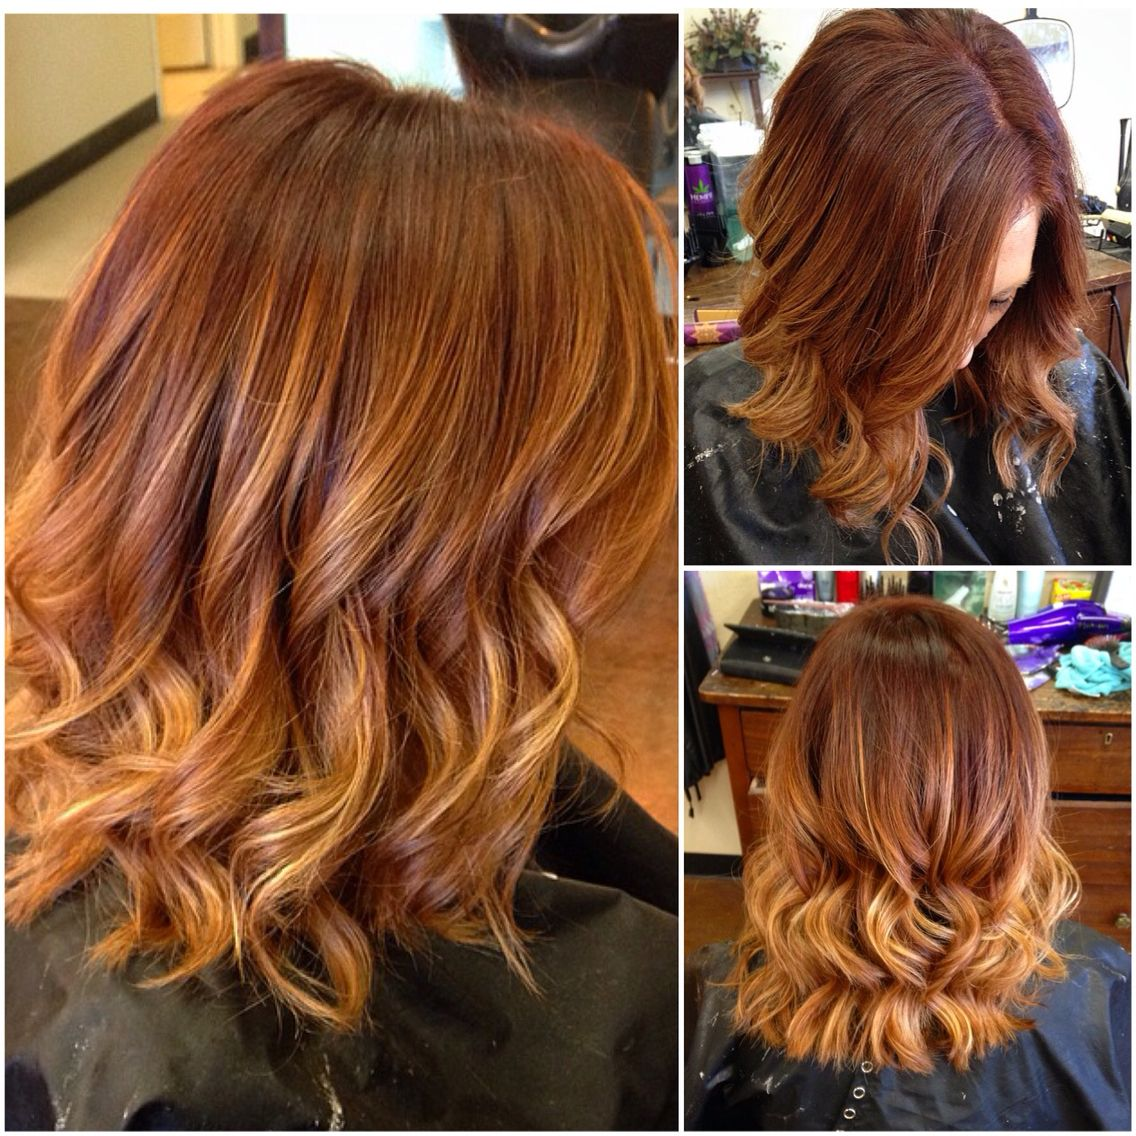 Red Hair With Balayage Ombre Redhead Redhair Redombre Balayage Ombre Red Red Balayage Hair Short Hair Balayage Balayage Hair